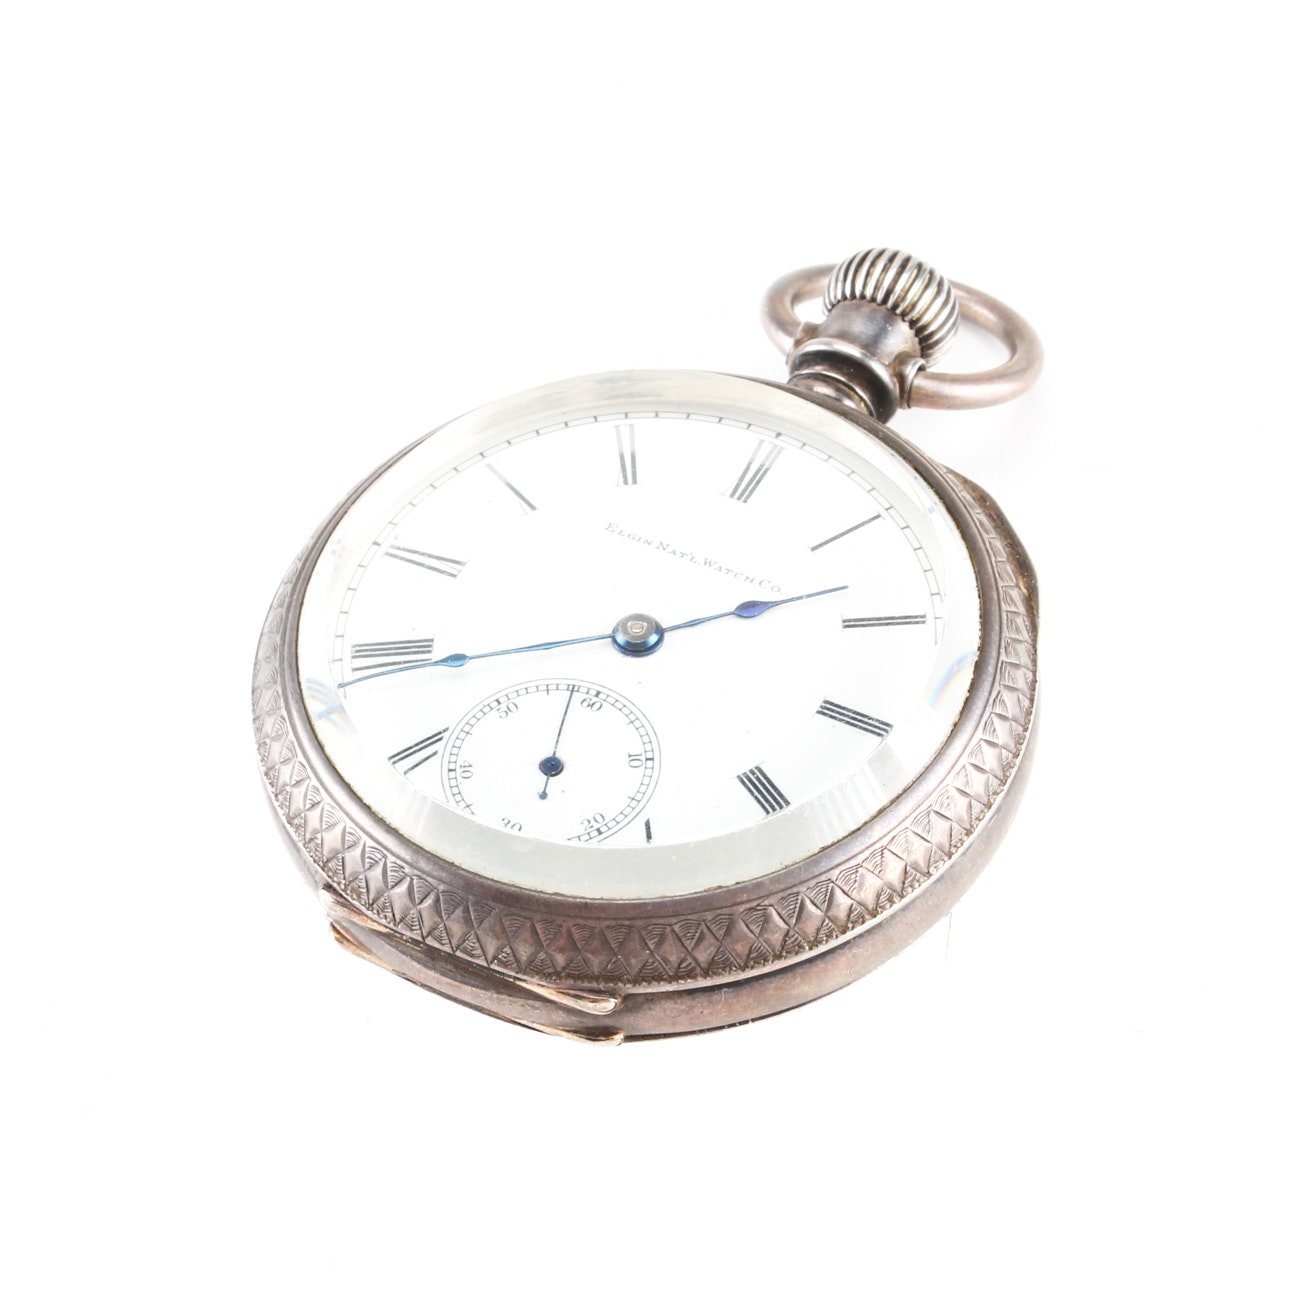 Antique Elgin National Watch Company Pocket Watch